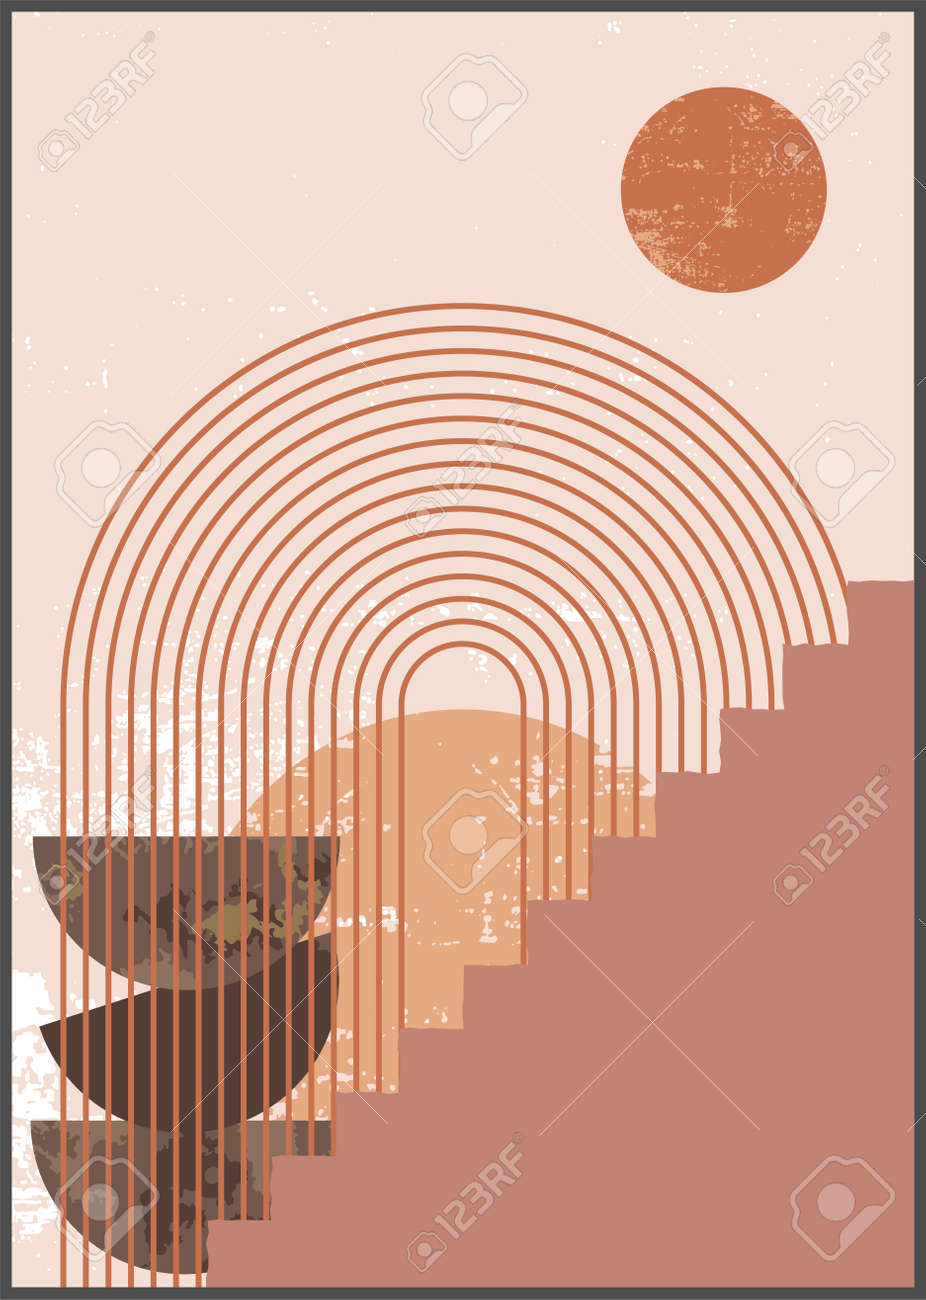 Minimalist Wall Art Abstract Geometric Boho Aesthetic Interior Home Decor Neutral Colors Wall Print Grungy Organic Texture Geometric Shapes Lines Circles Stairs Contemporary Artistic Print Royalty Free Cliparts Vectors And Stock Illustration